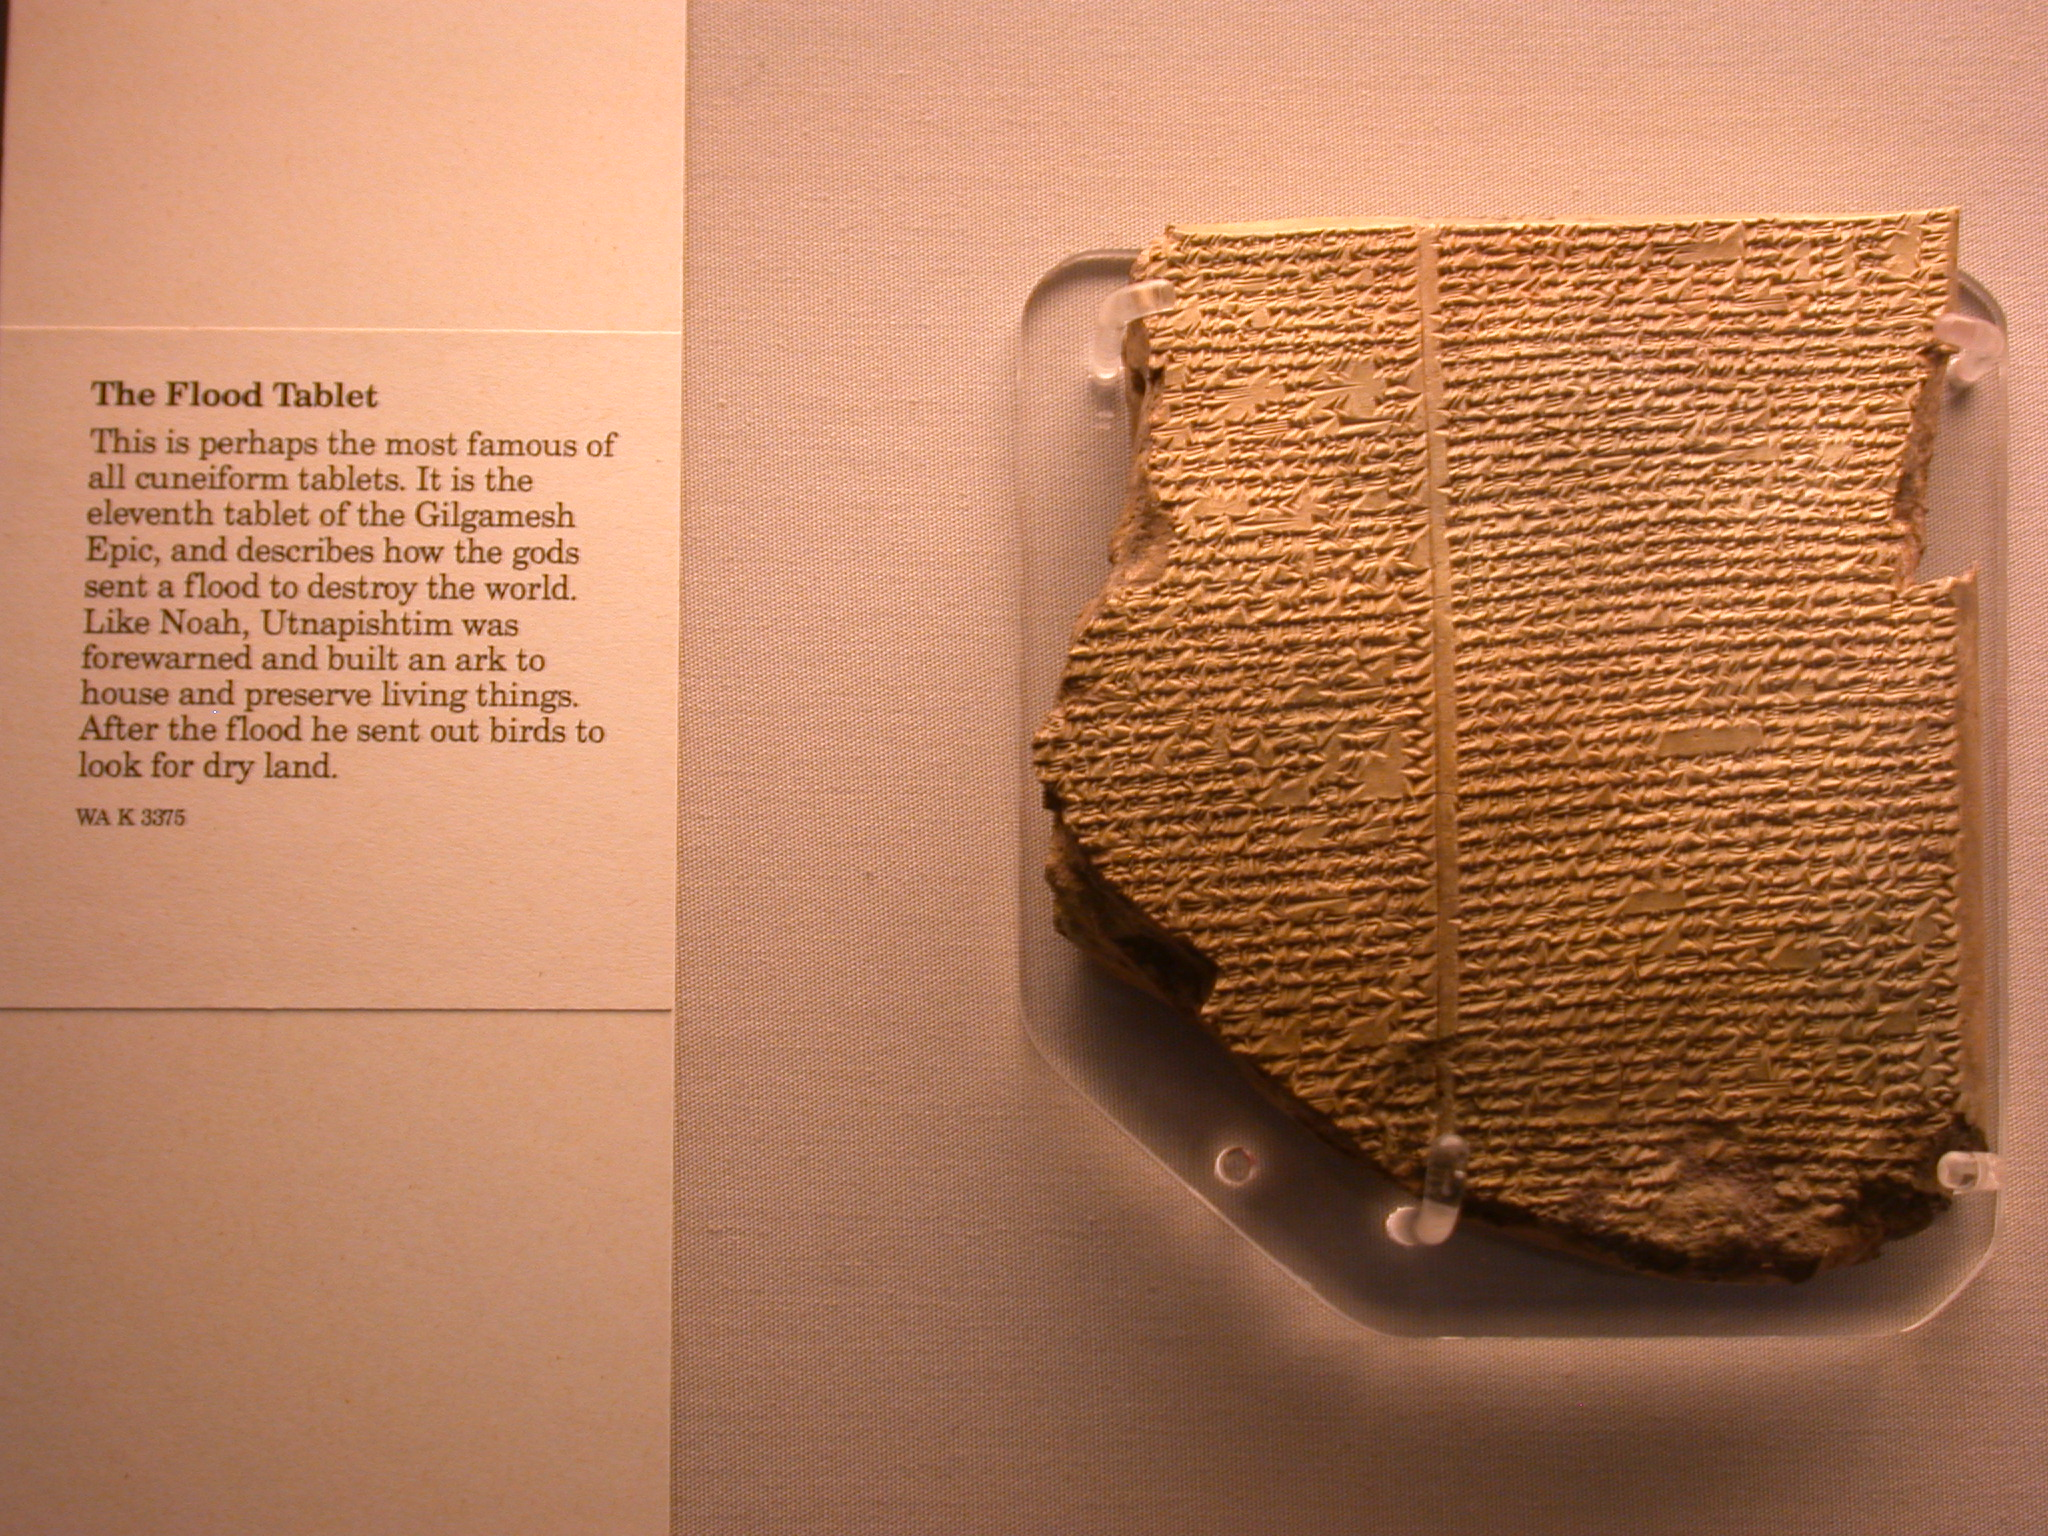 Flood Tablet, 11th Tablet of Gilgamesh Epic, Utnapishtim and the Ark, Cuneiform, Assyrian, in British Museum, London, England